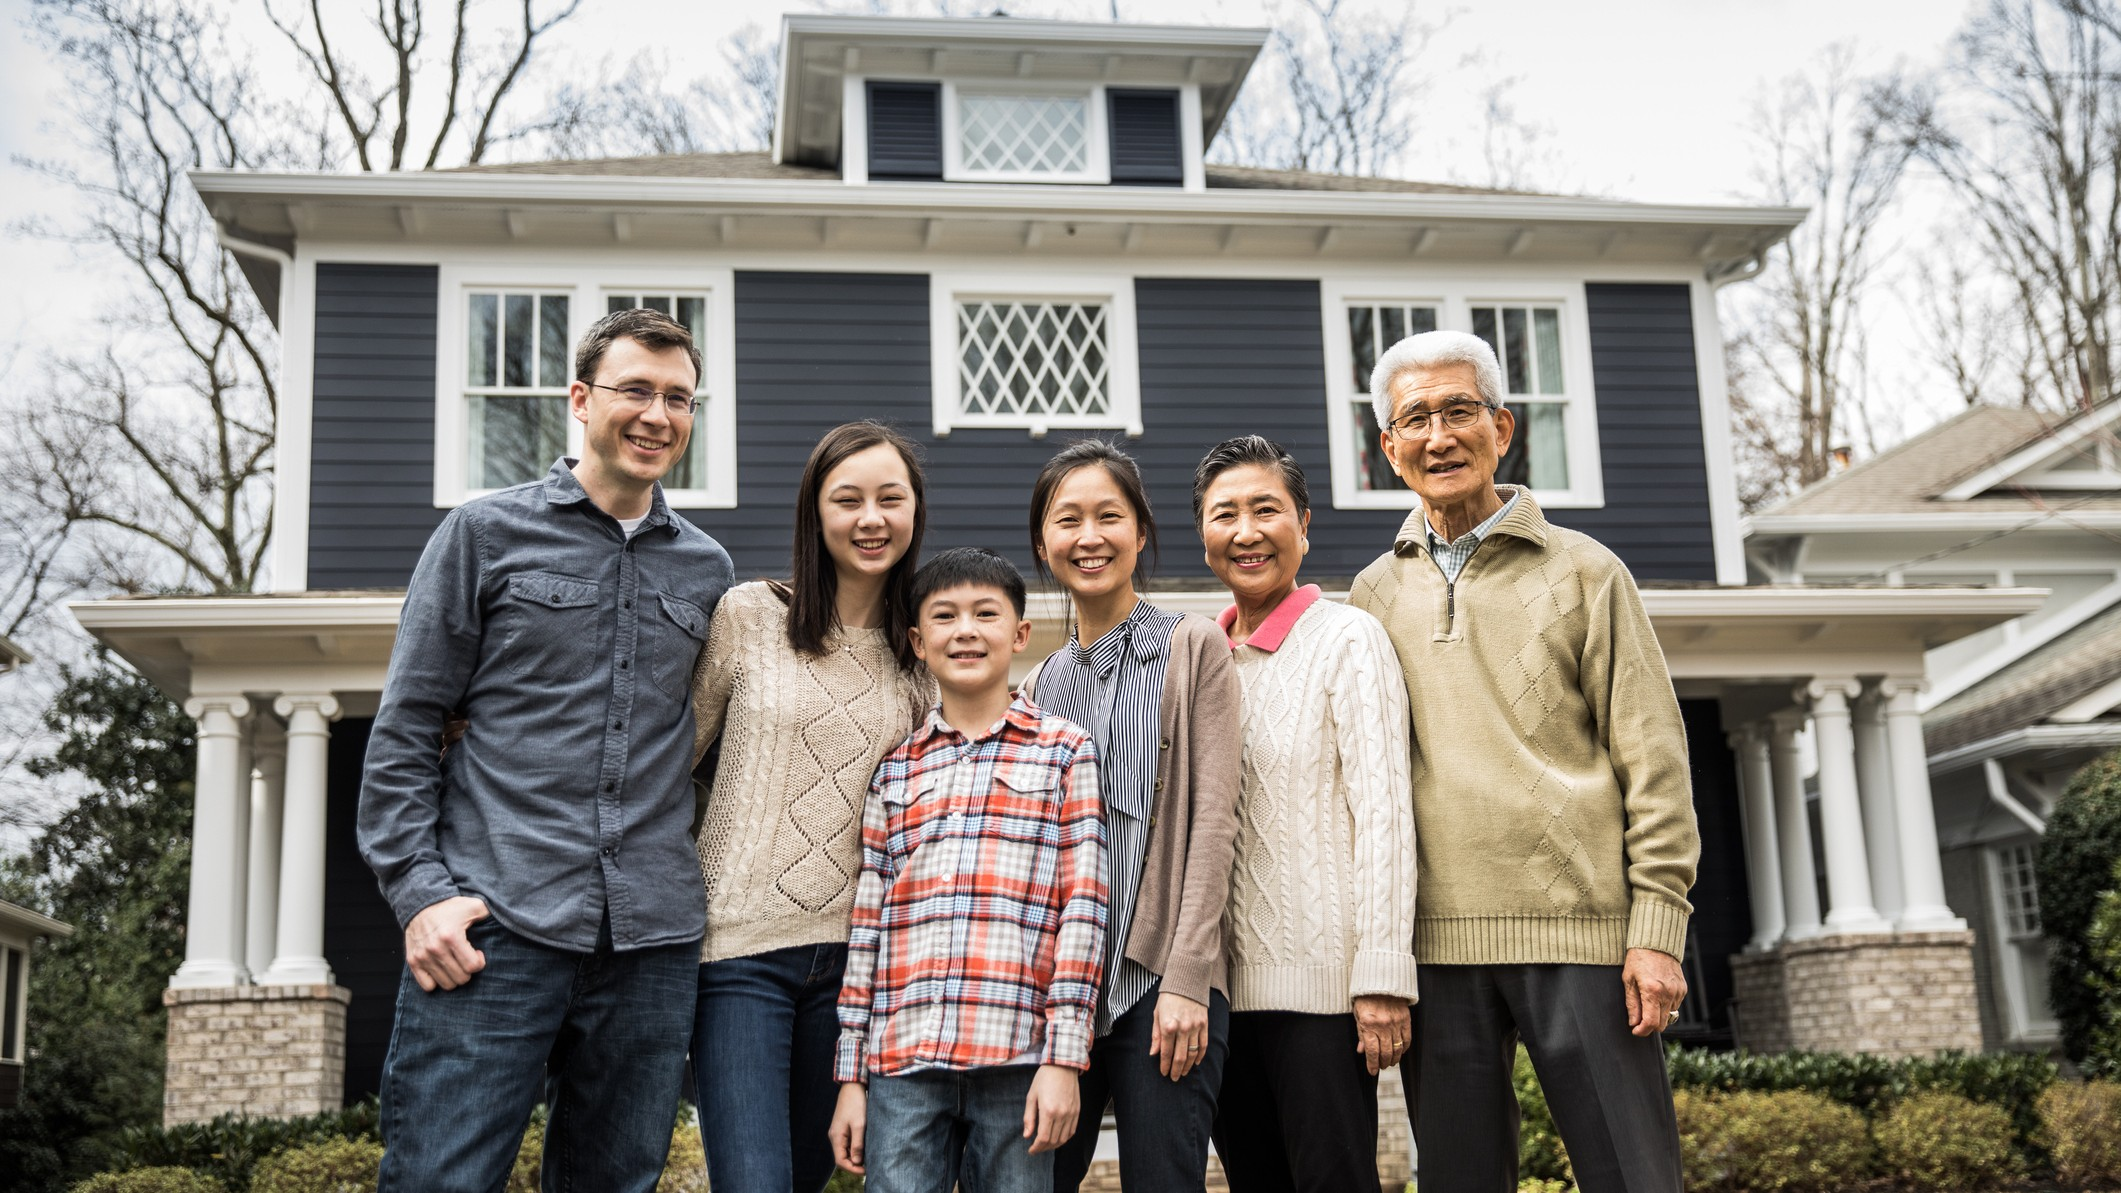 Multiple generations of a family in front of house